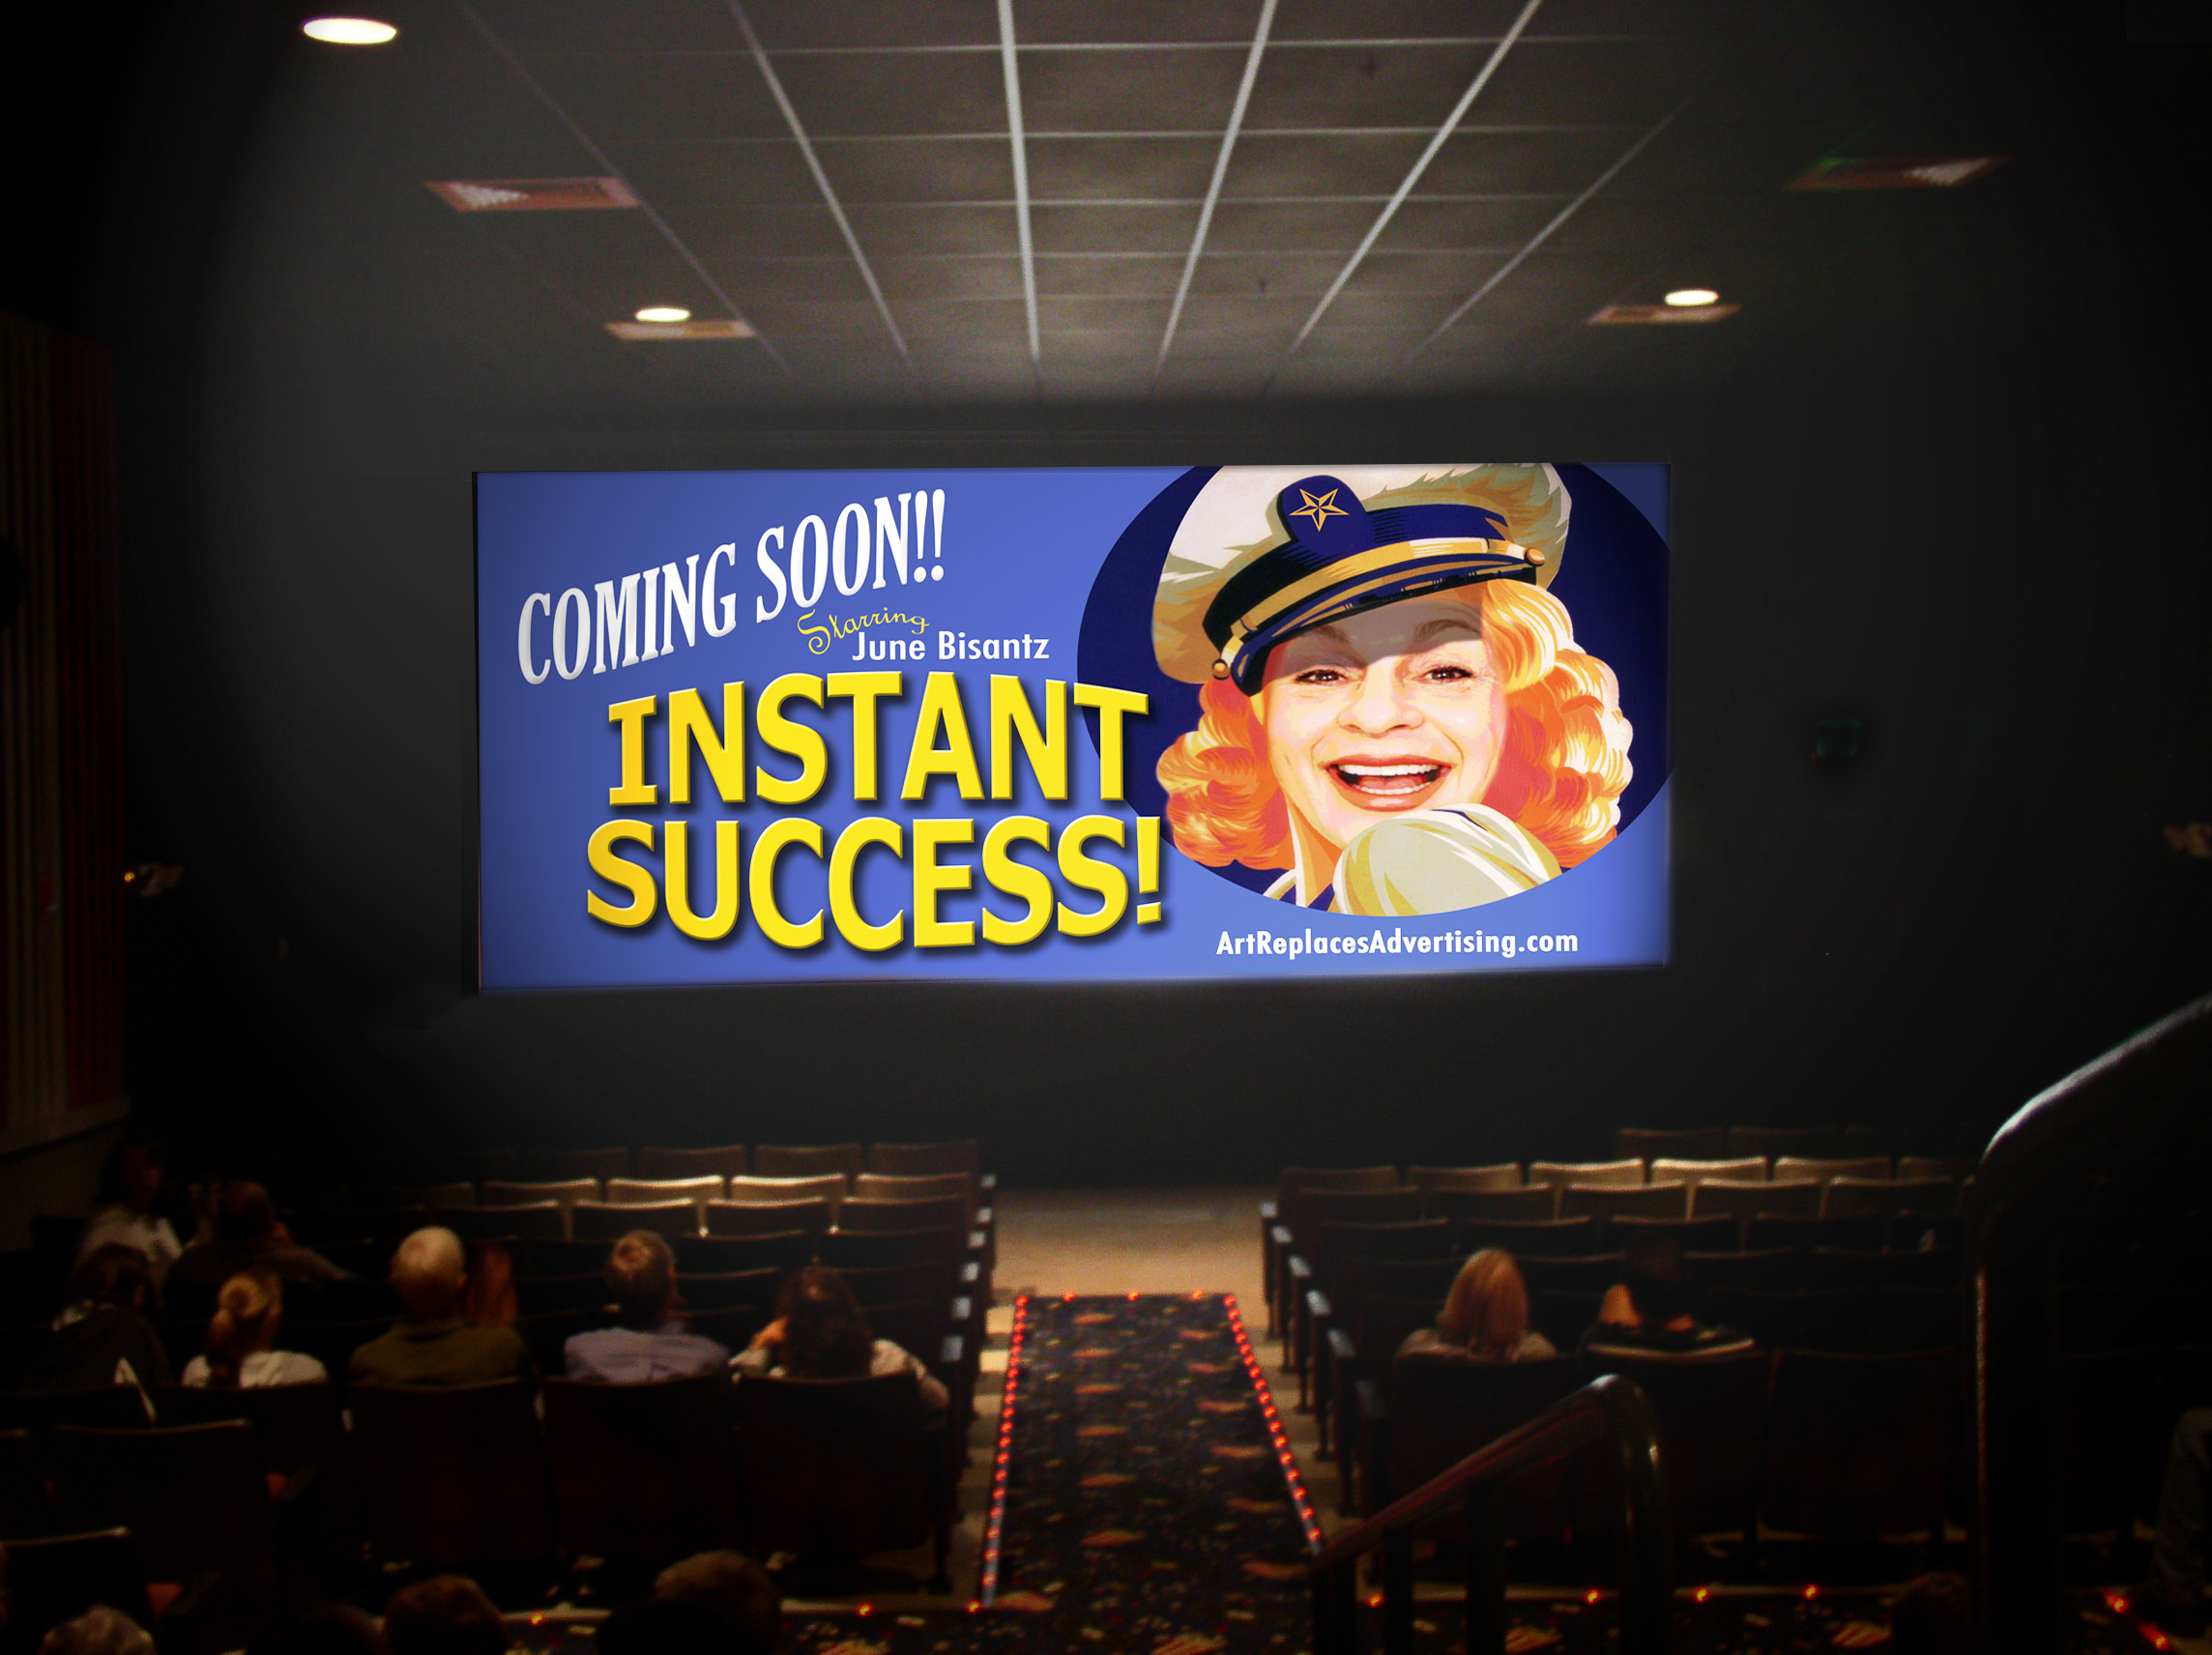 Instant Success - on the screen